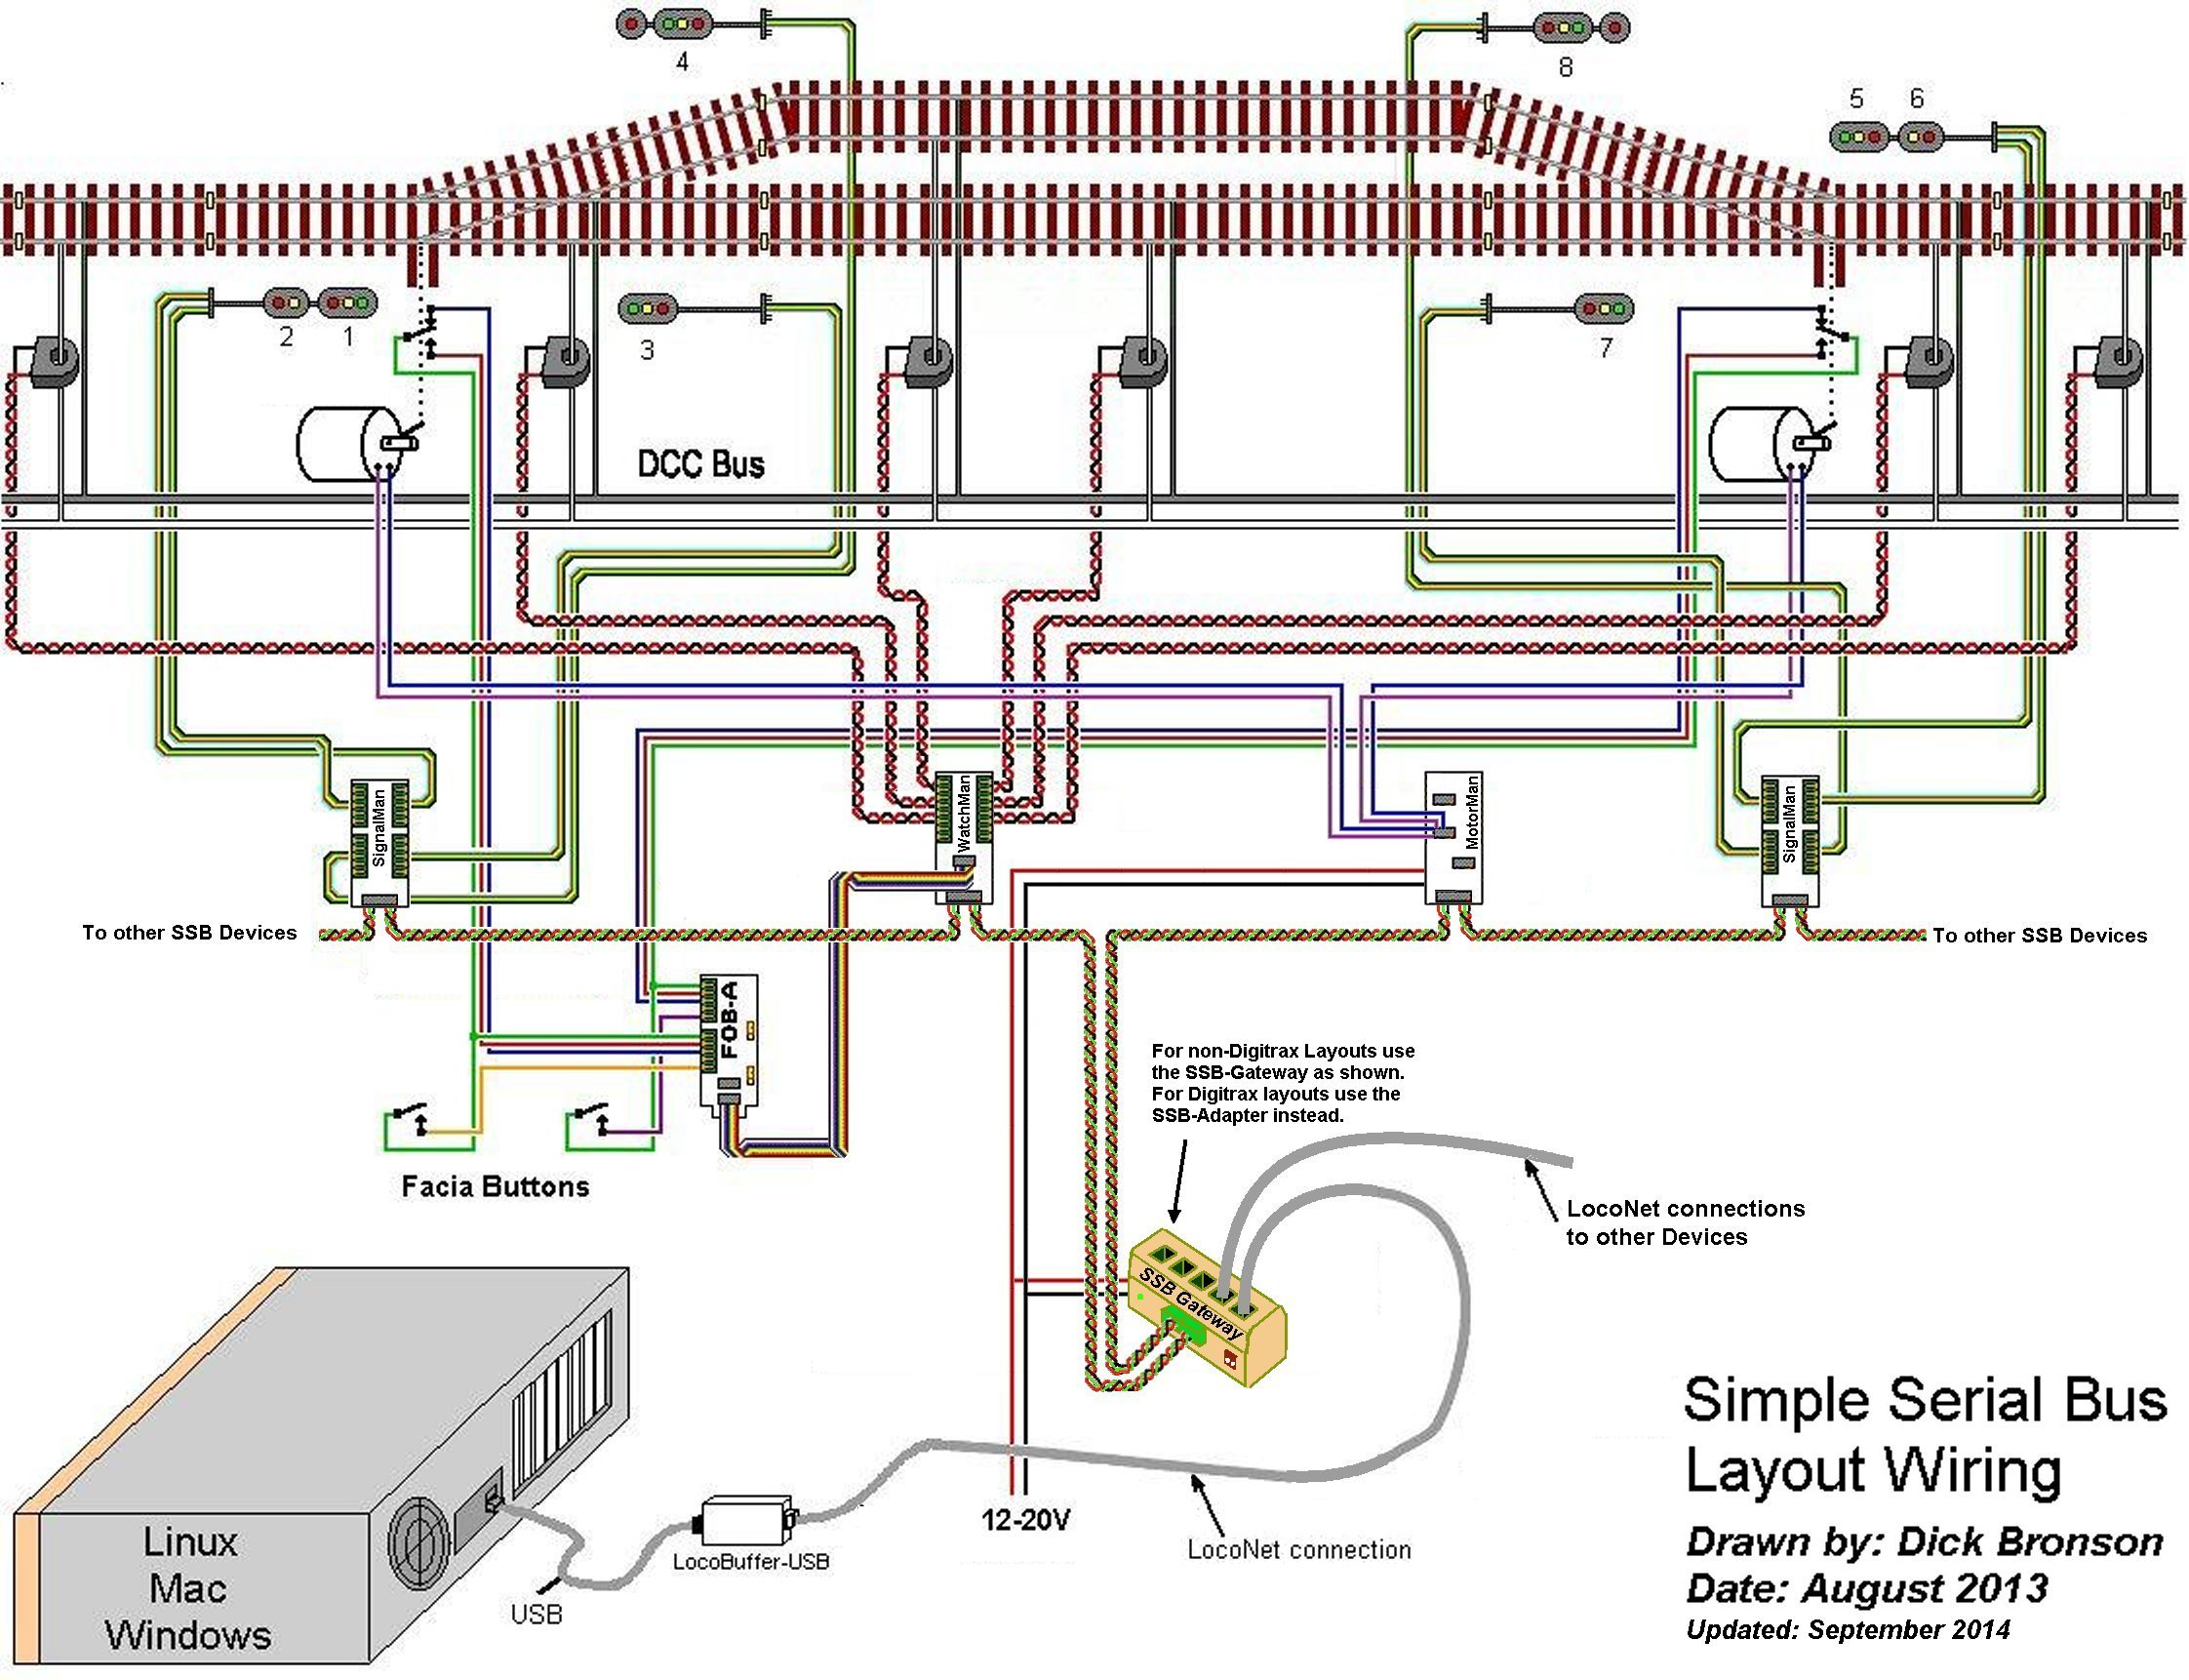 Wiring Diagram On Dcc